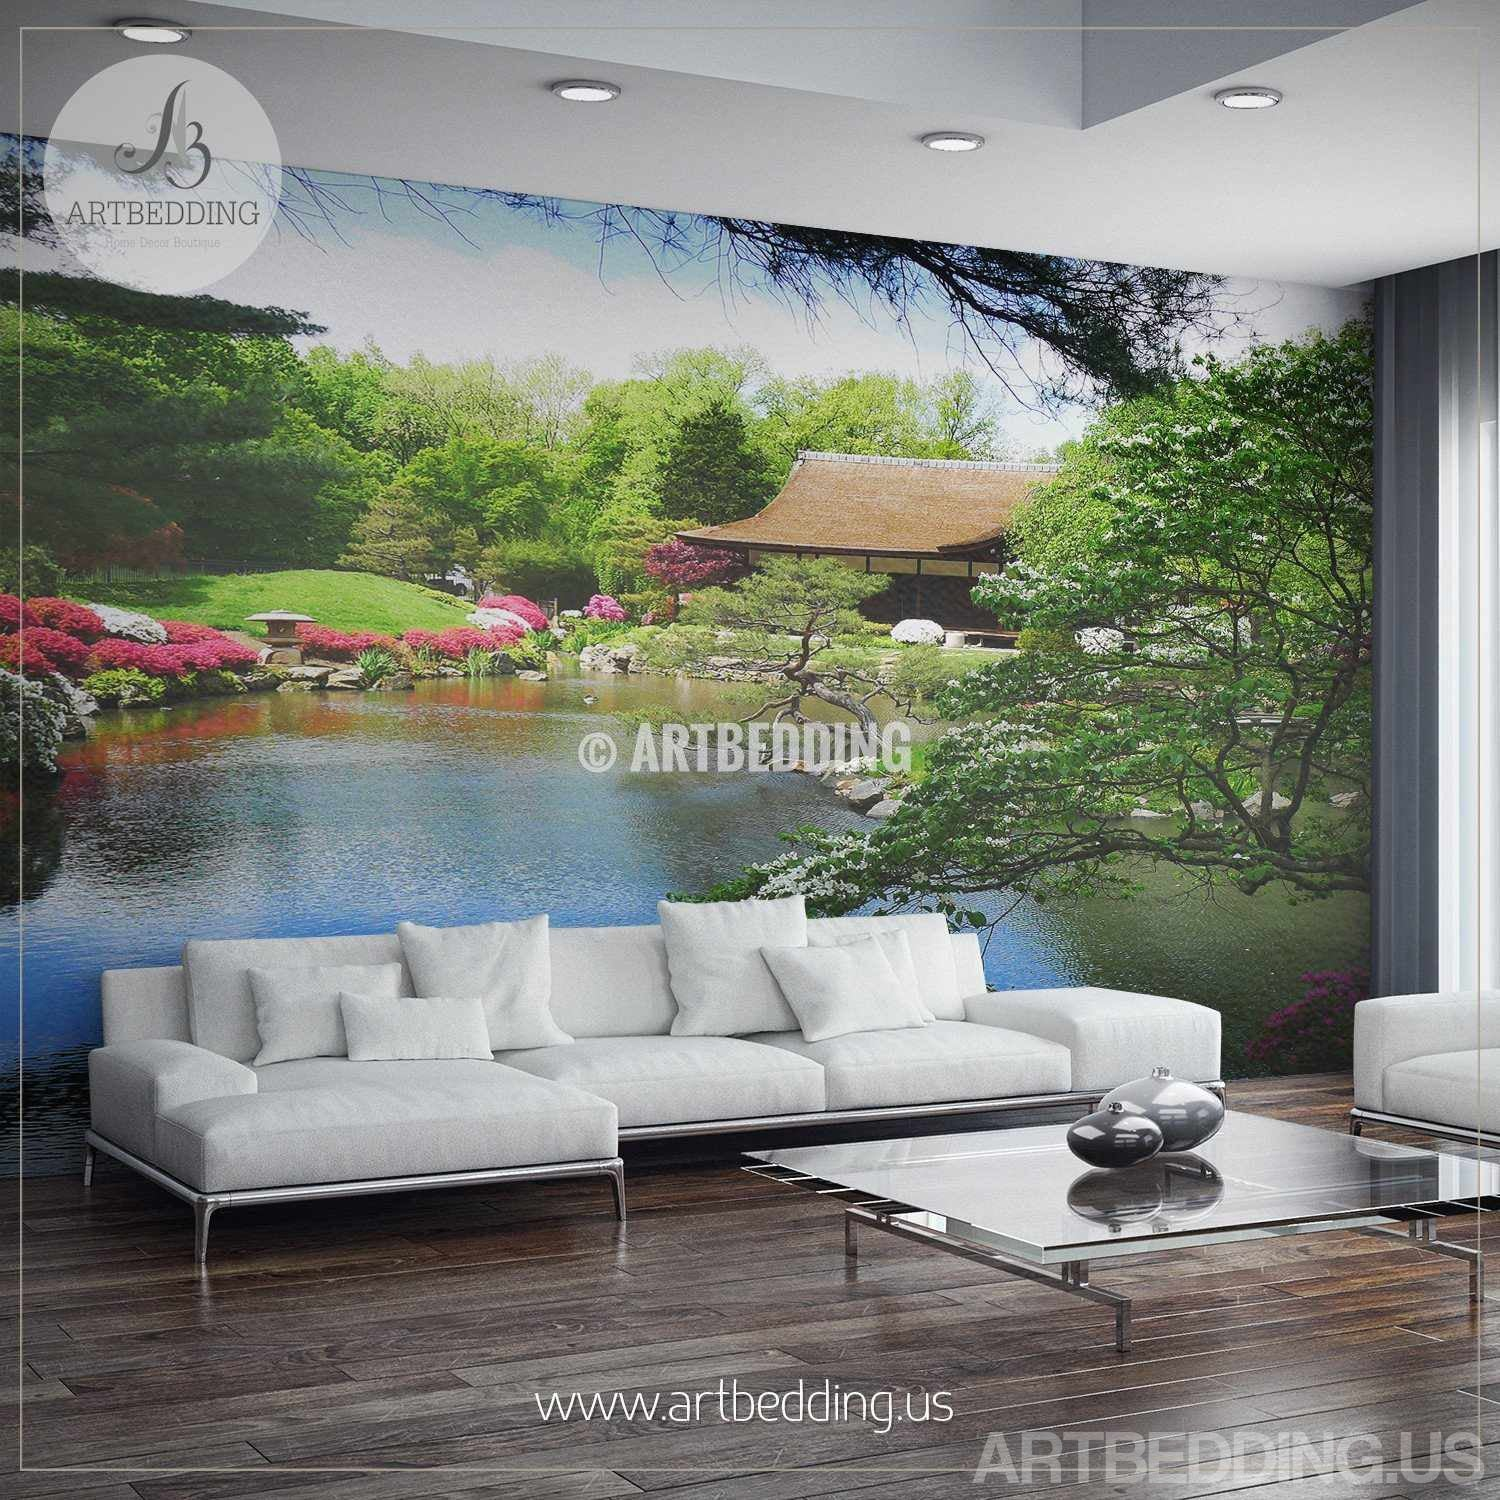 ... Japanese Garden Wall Mural, Photo Mural Japanese Tea House With Flowers  Self Adhesive Peel ...